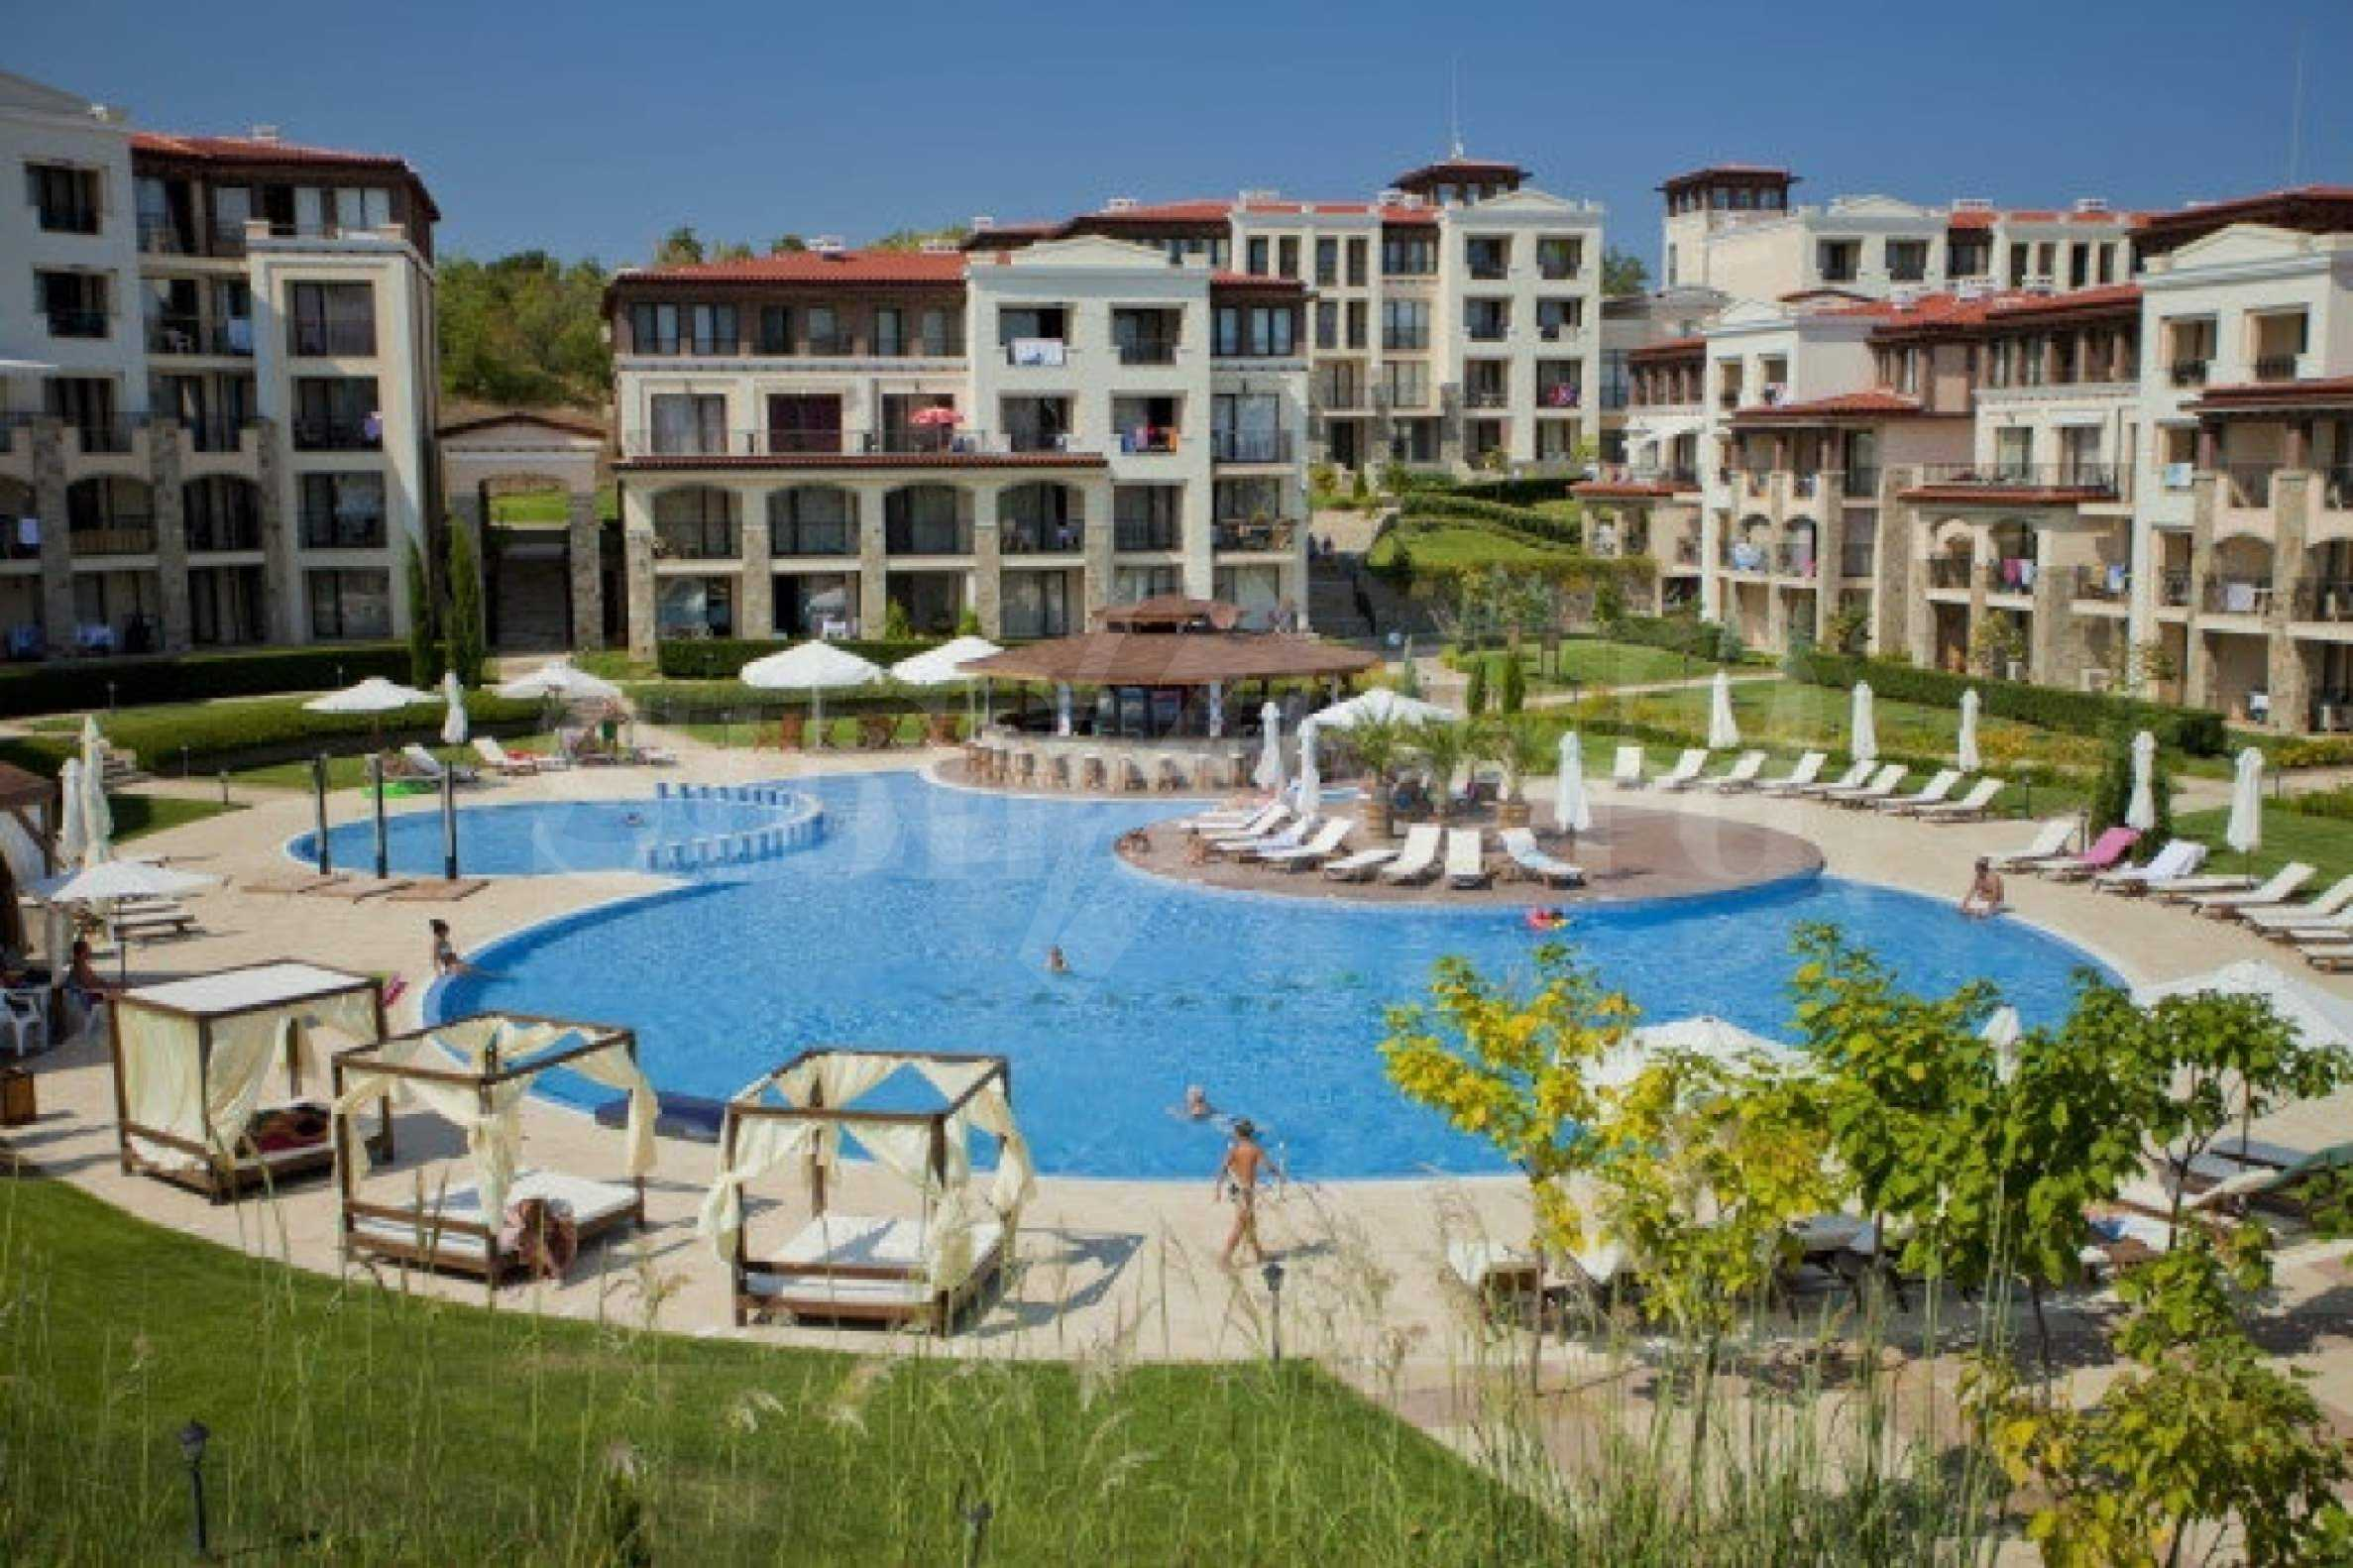 Fully furnished one-bedroom studio apartment in an elite complex in Kavatsite